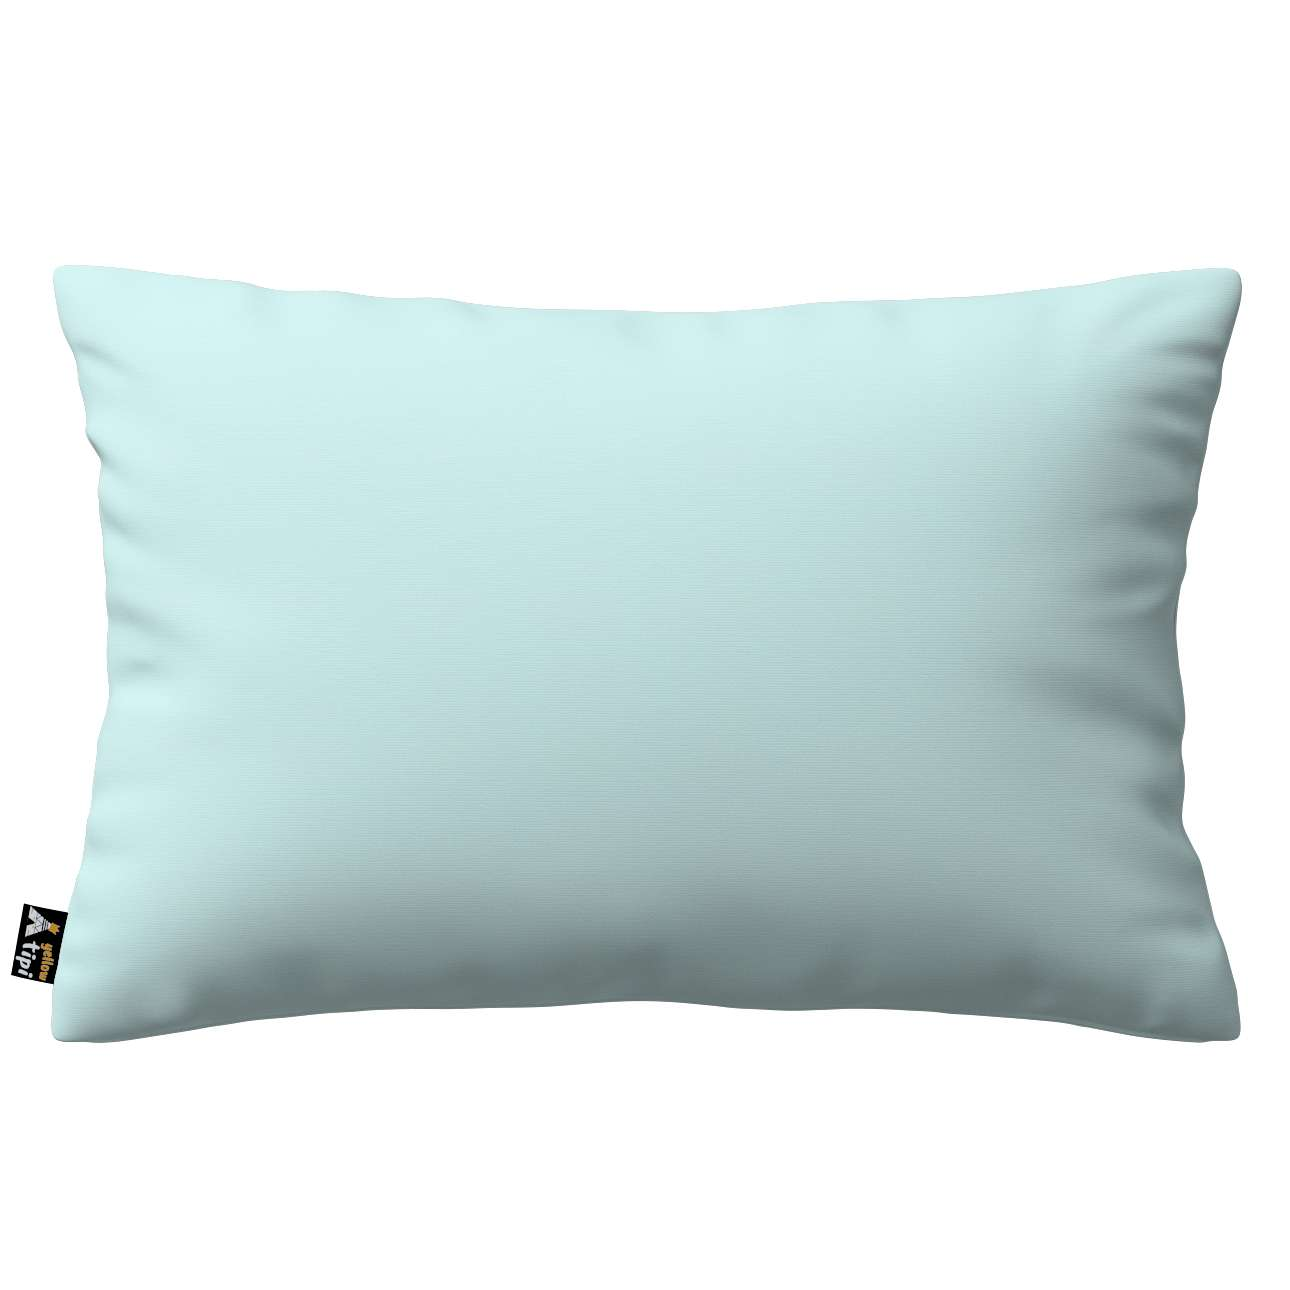 Milly rectangular cushion cover in collection Cotton Story, fabric: 702-10